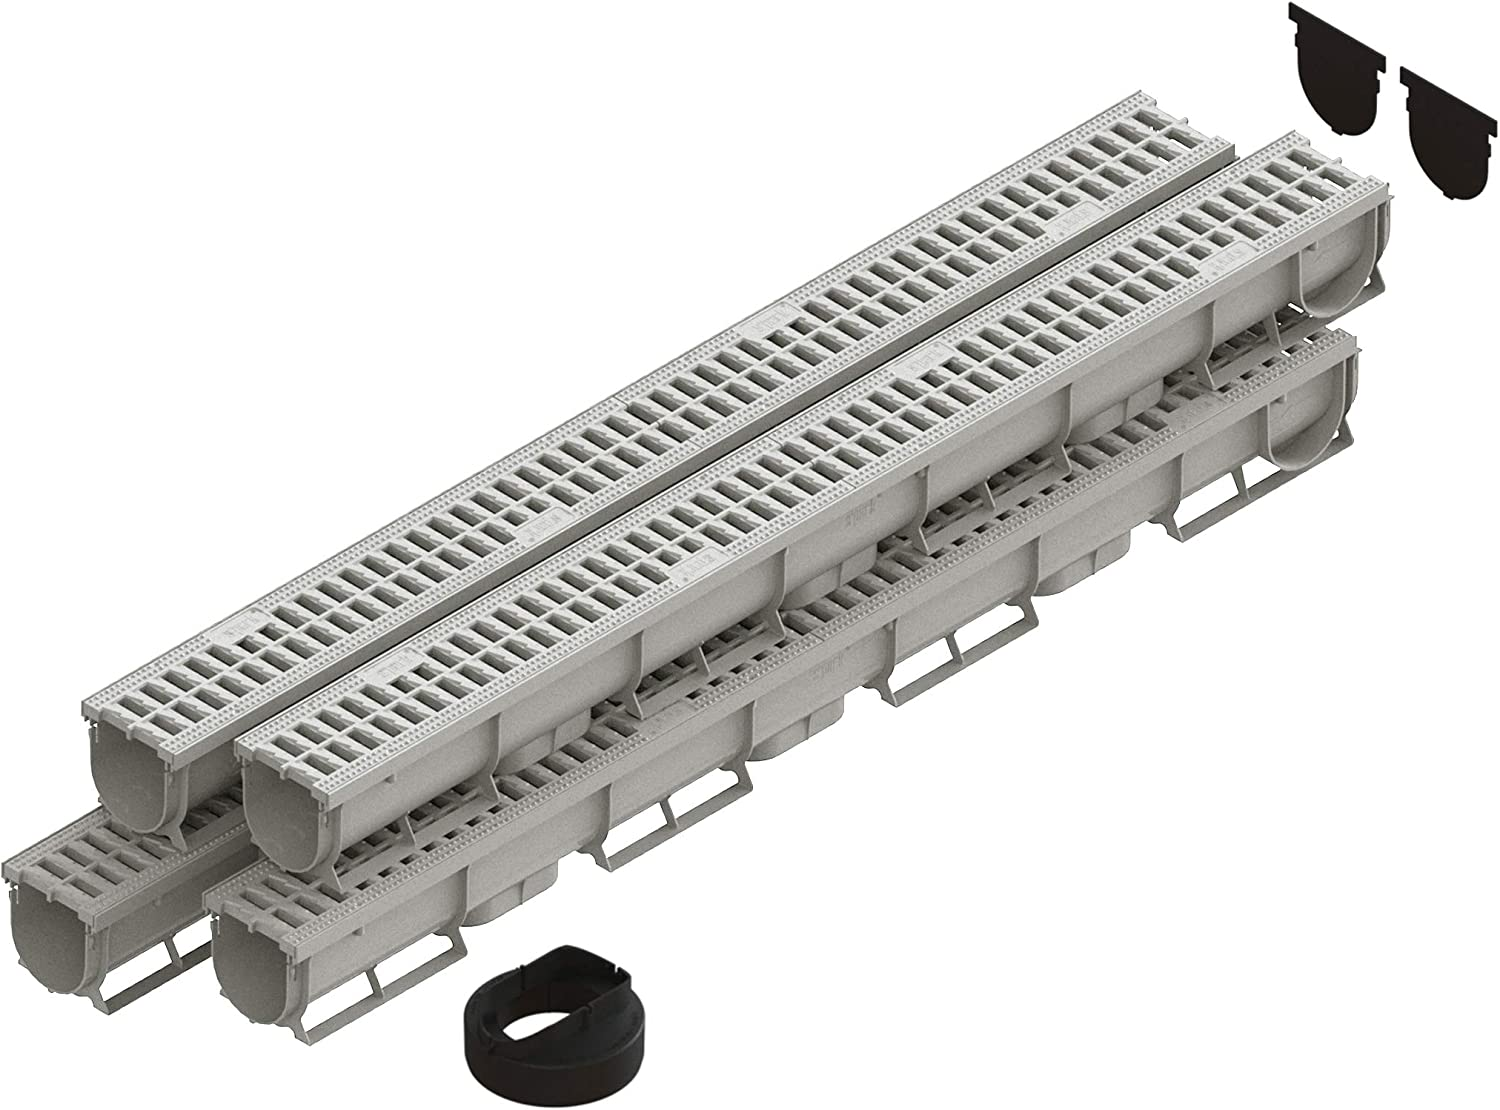 Standartpark Columbus Mall - 3 Inch Trench Drain IVORY System Ranking TOP1 4